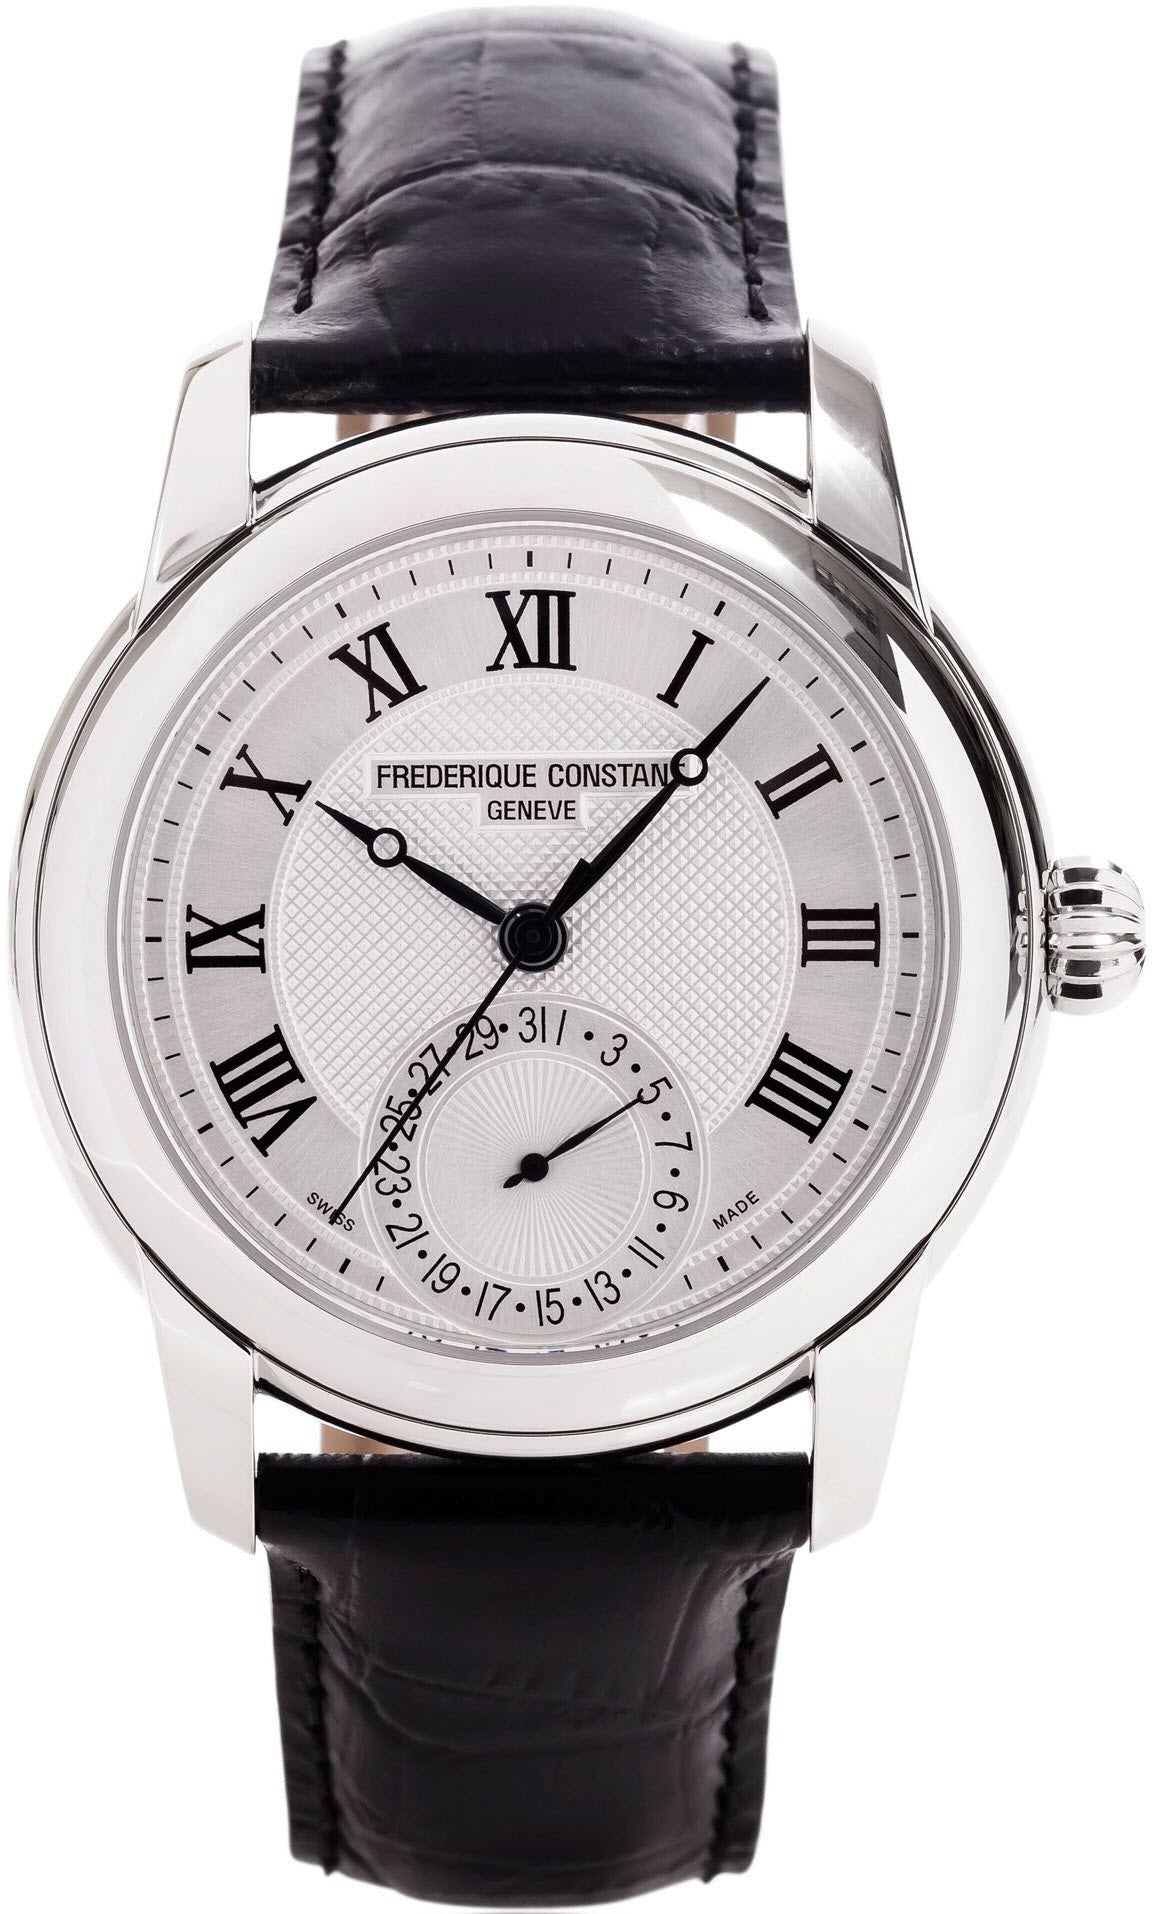 Frederique Constant Watch Manufacture Limited Edition